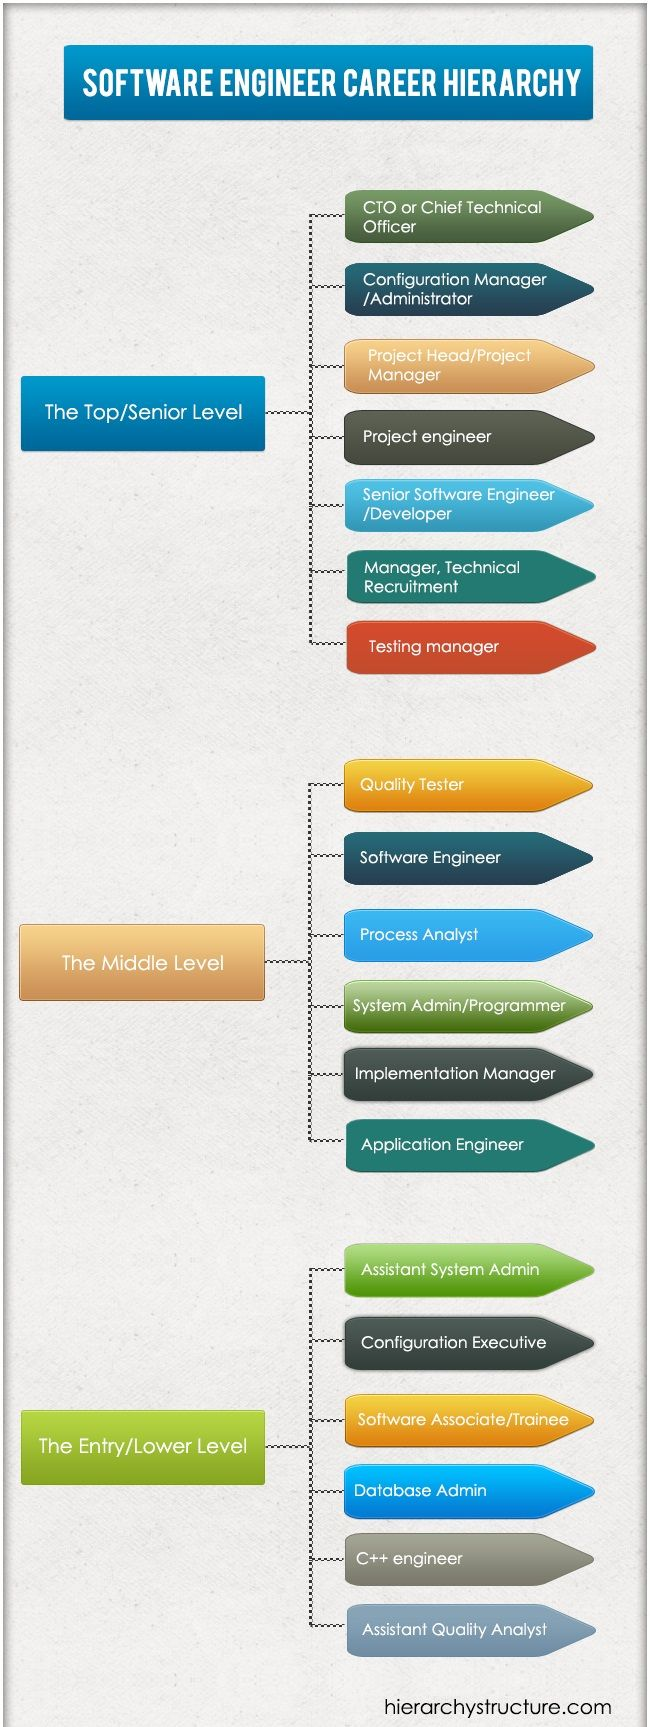 Software Developer Clothing In Games: Software Engineer Career Hierarchy